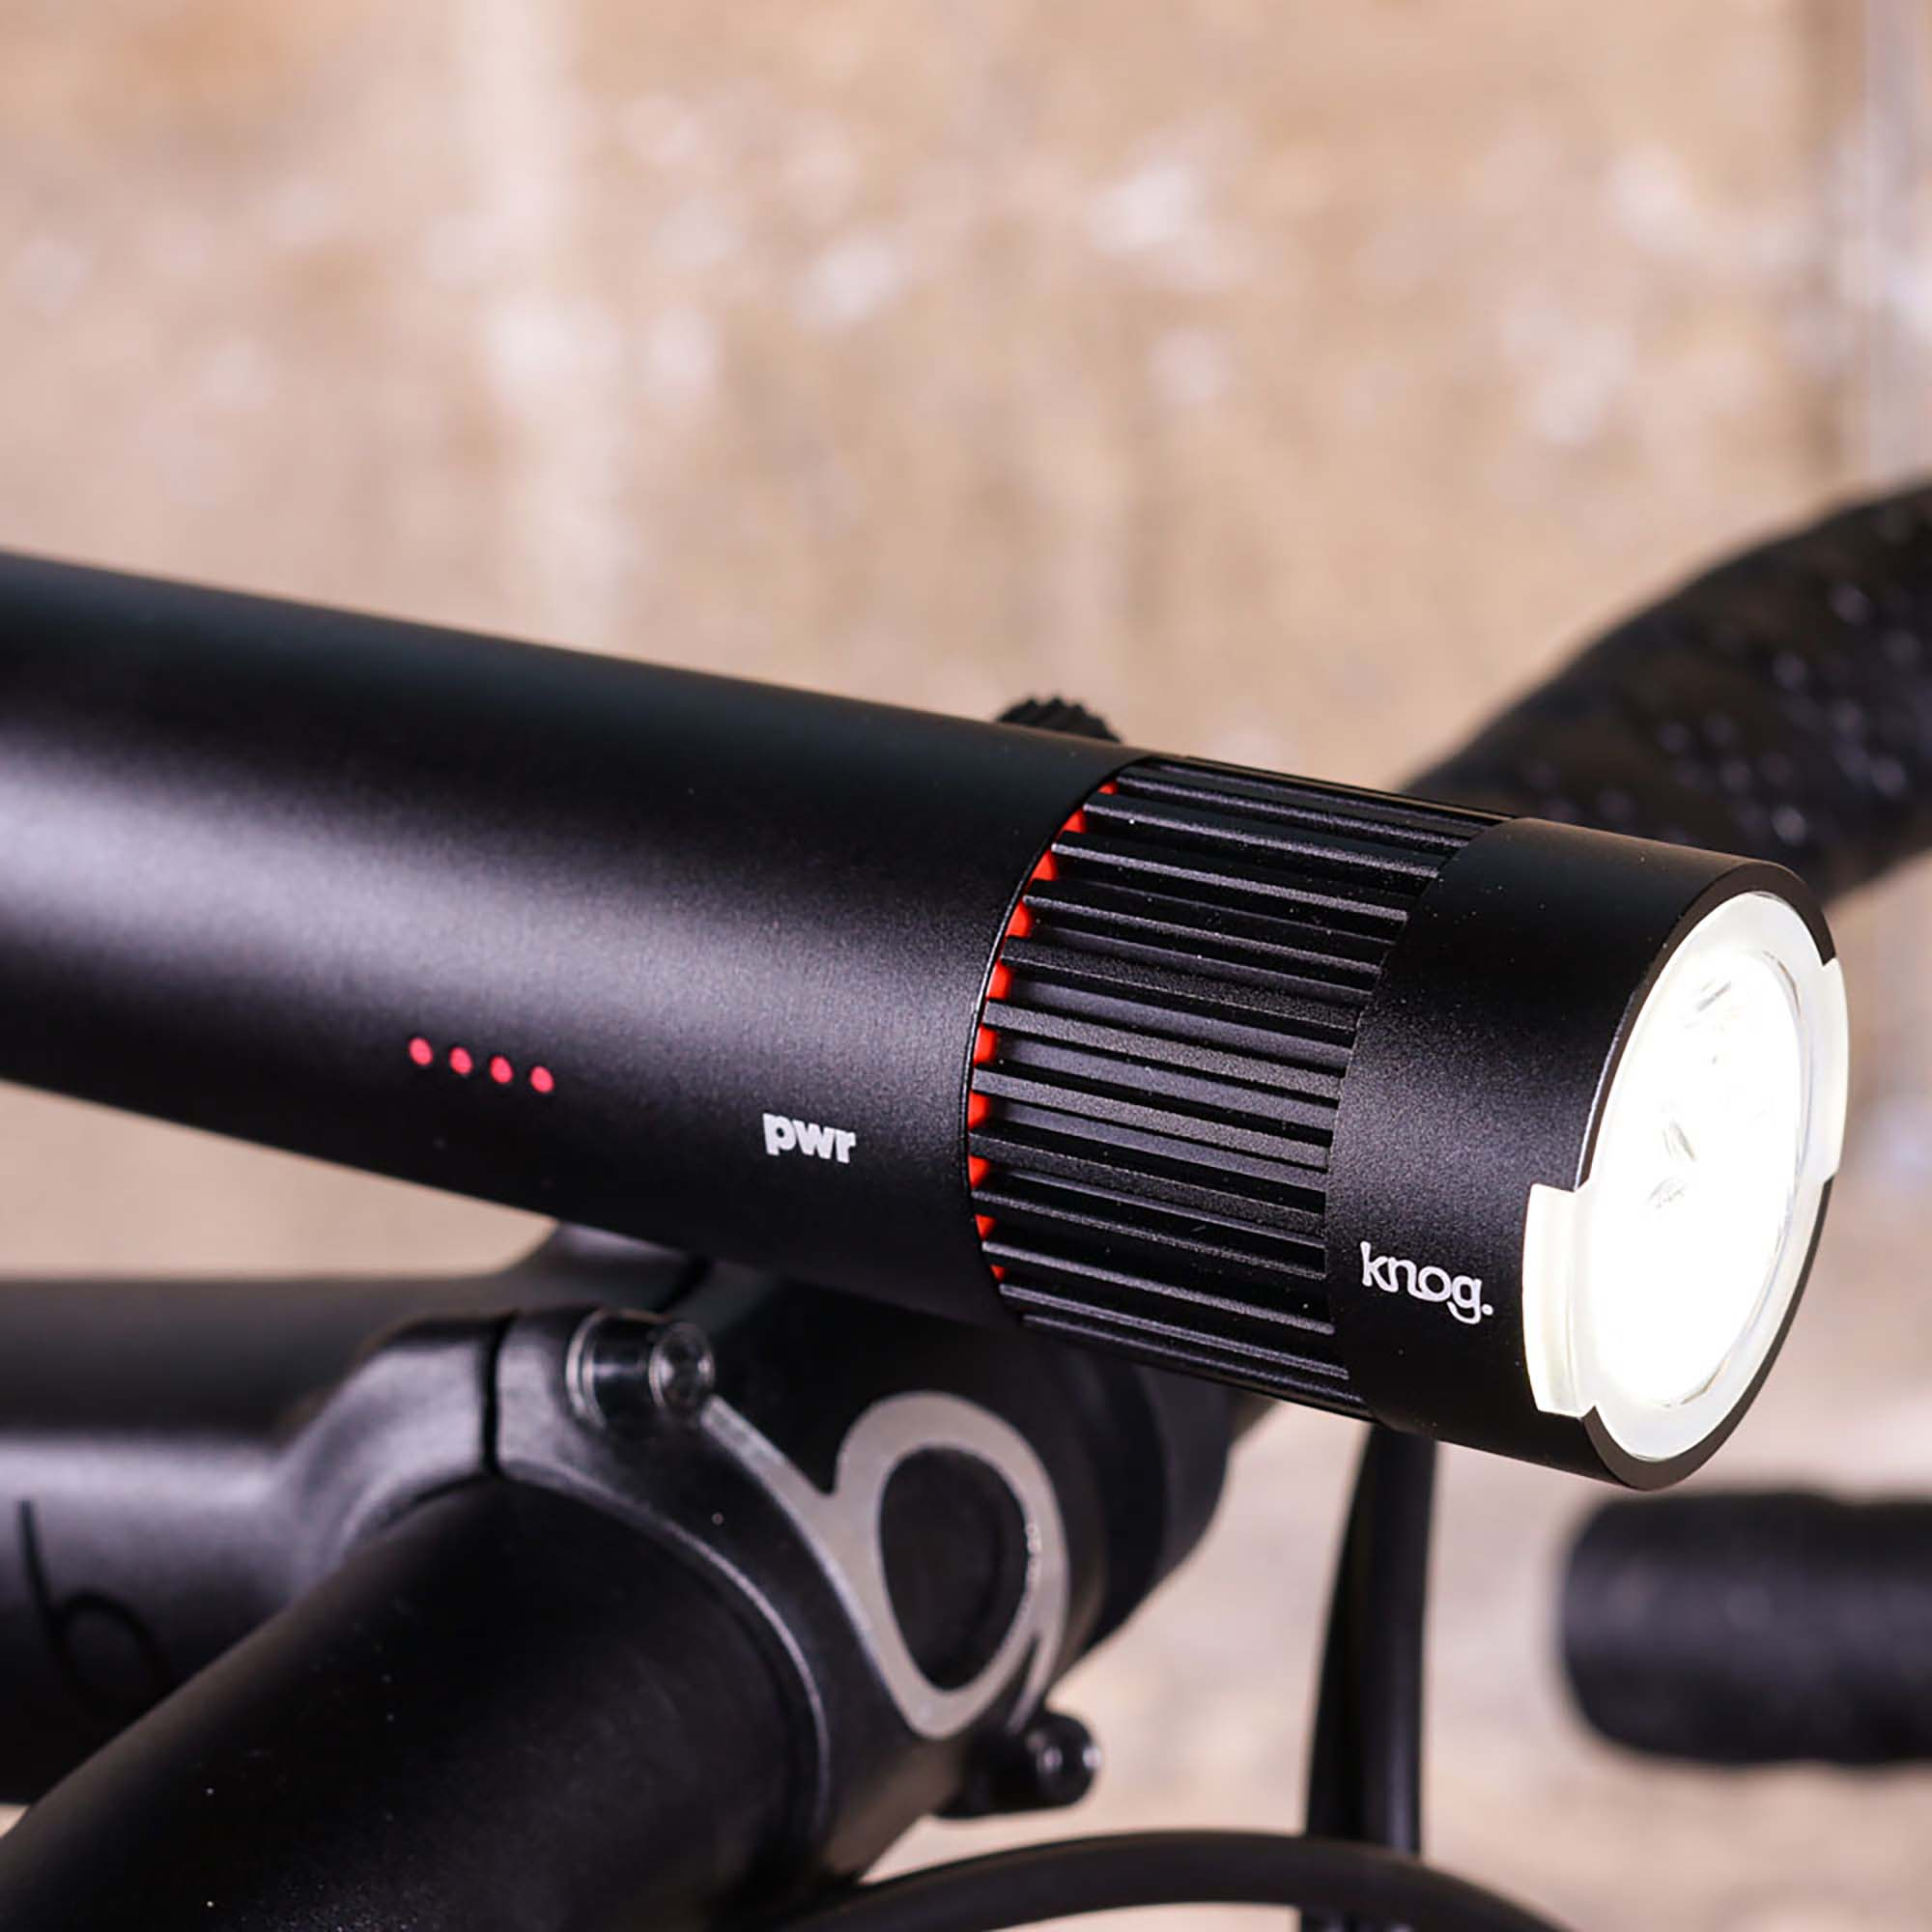 Knog PWR lights and portable charger review